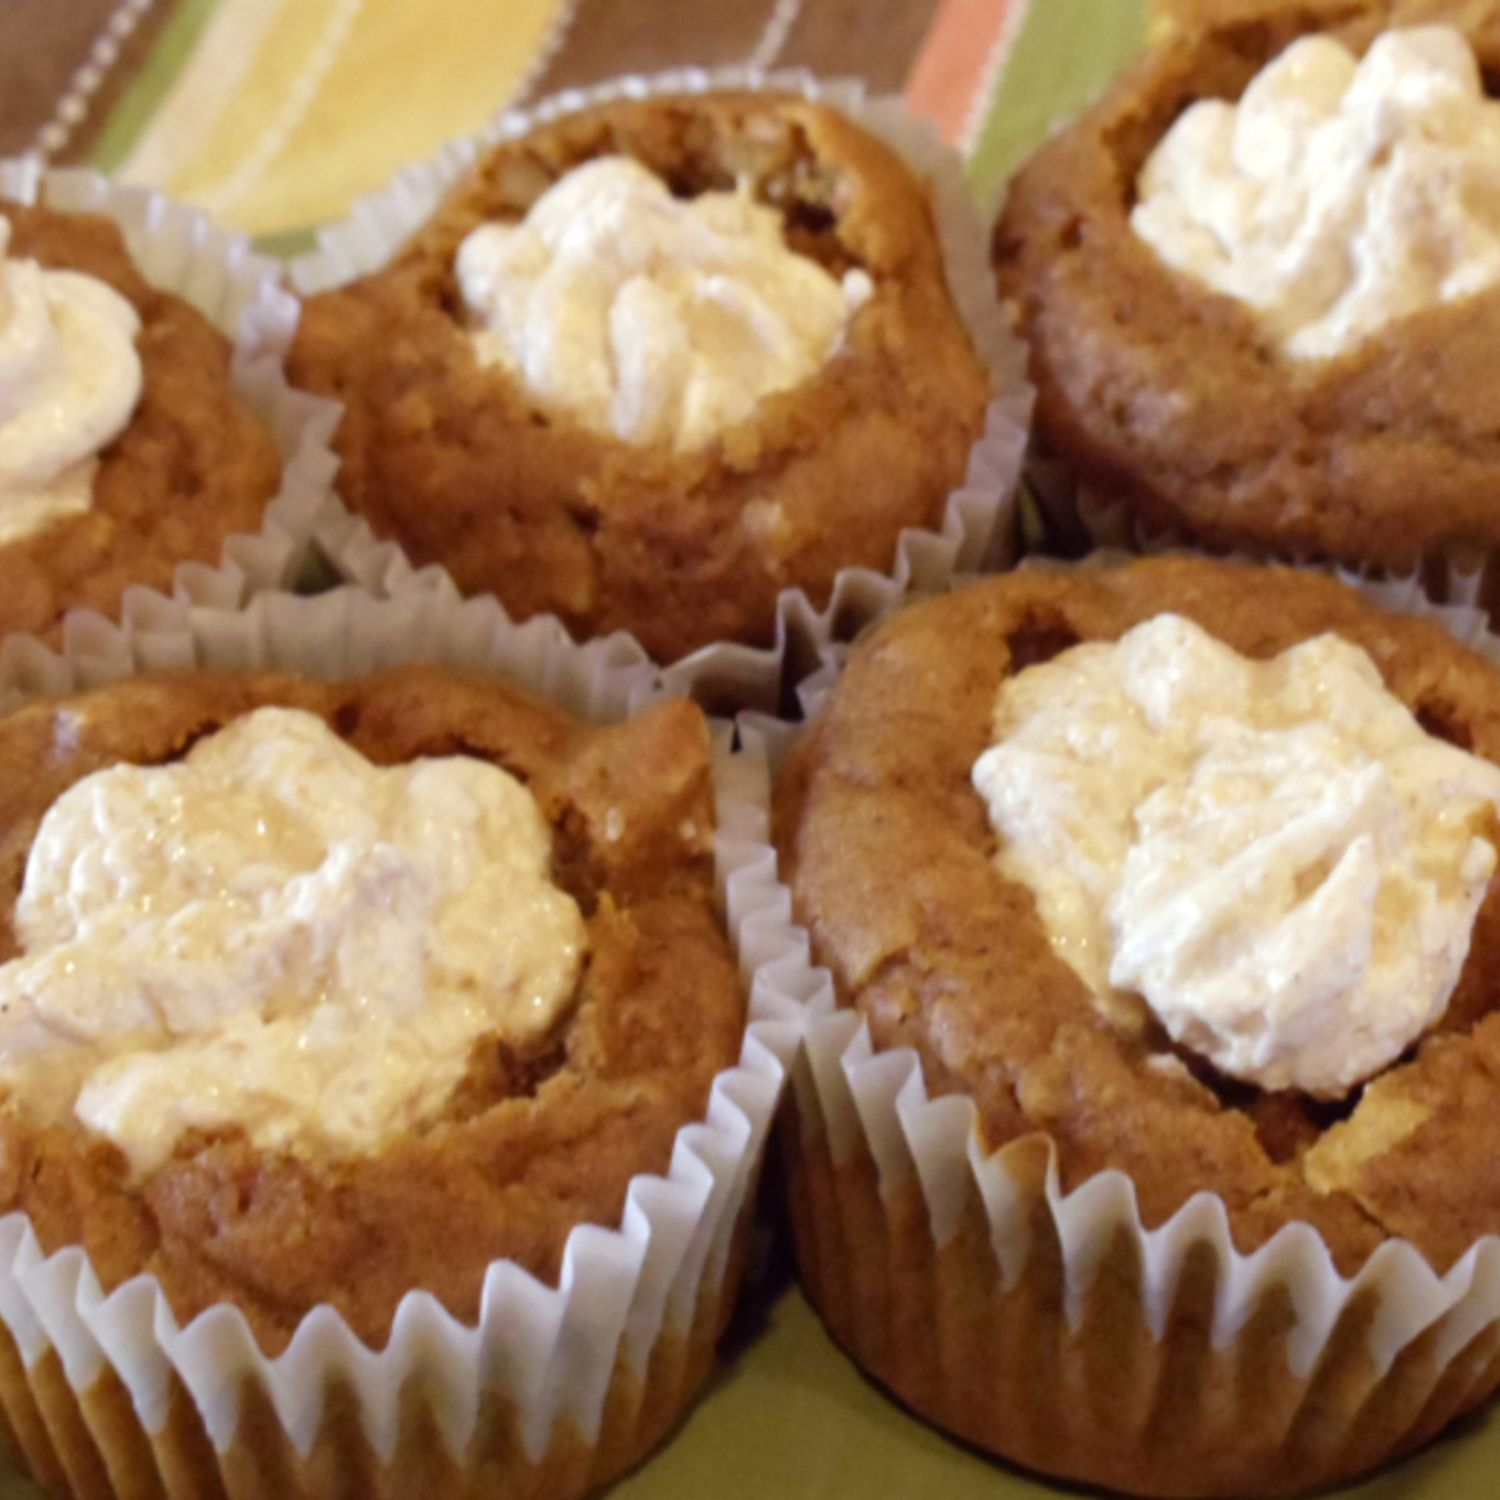 Pumpkin Muffins filled with Spiced Marshmallow Cream Recipe | Just A Pinch Recipes